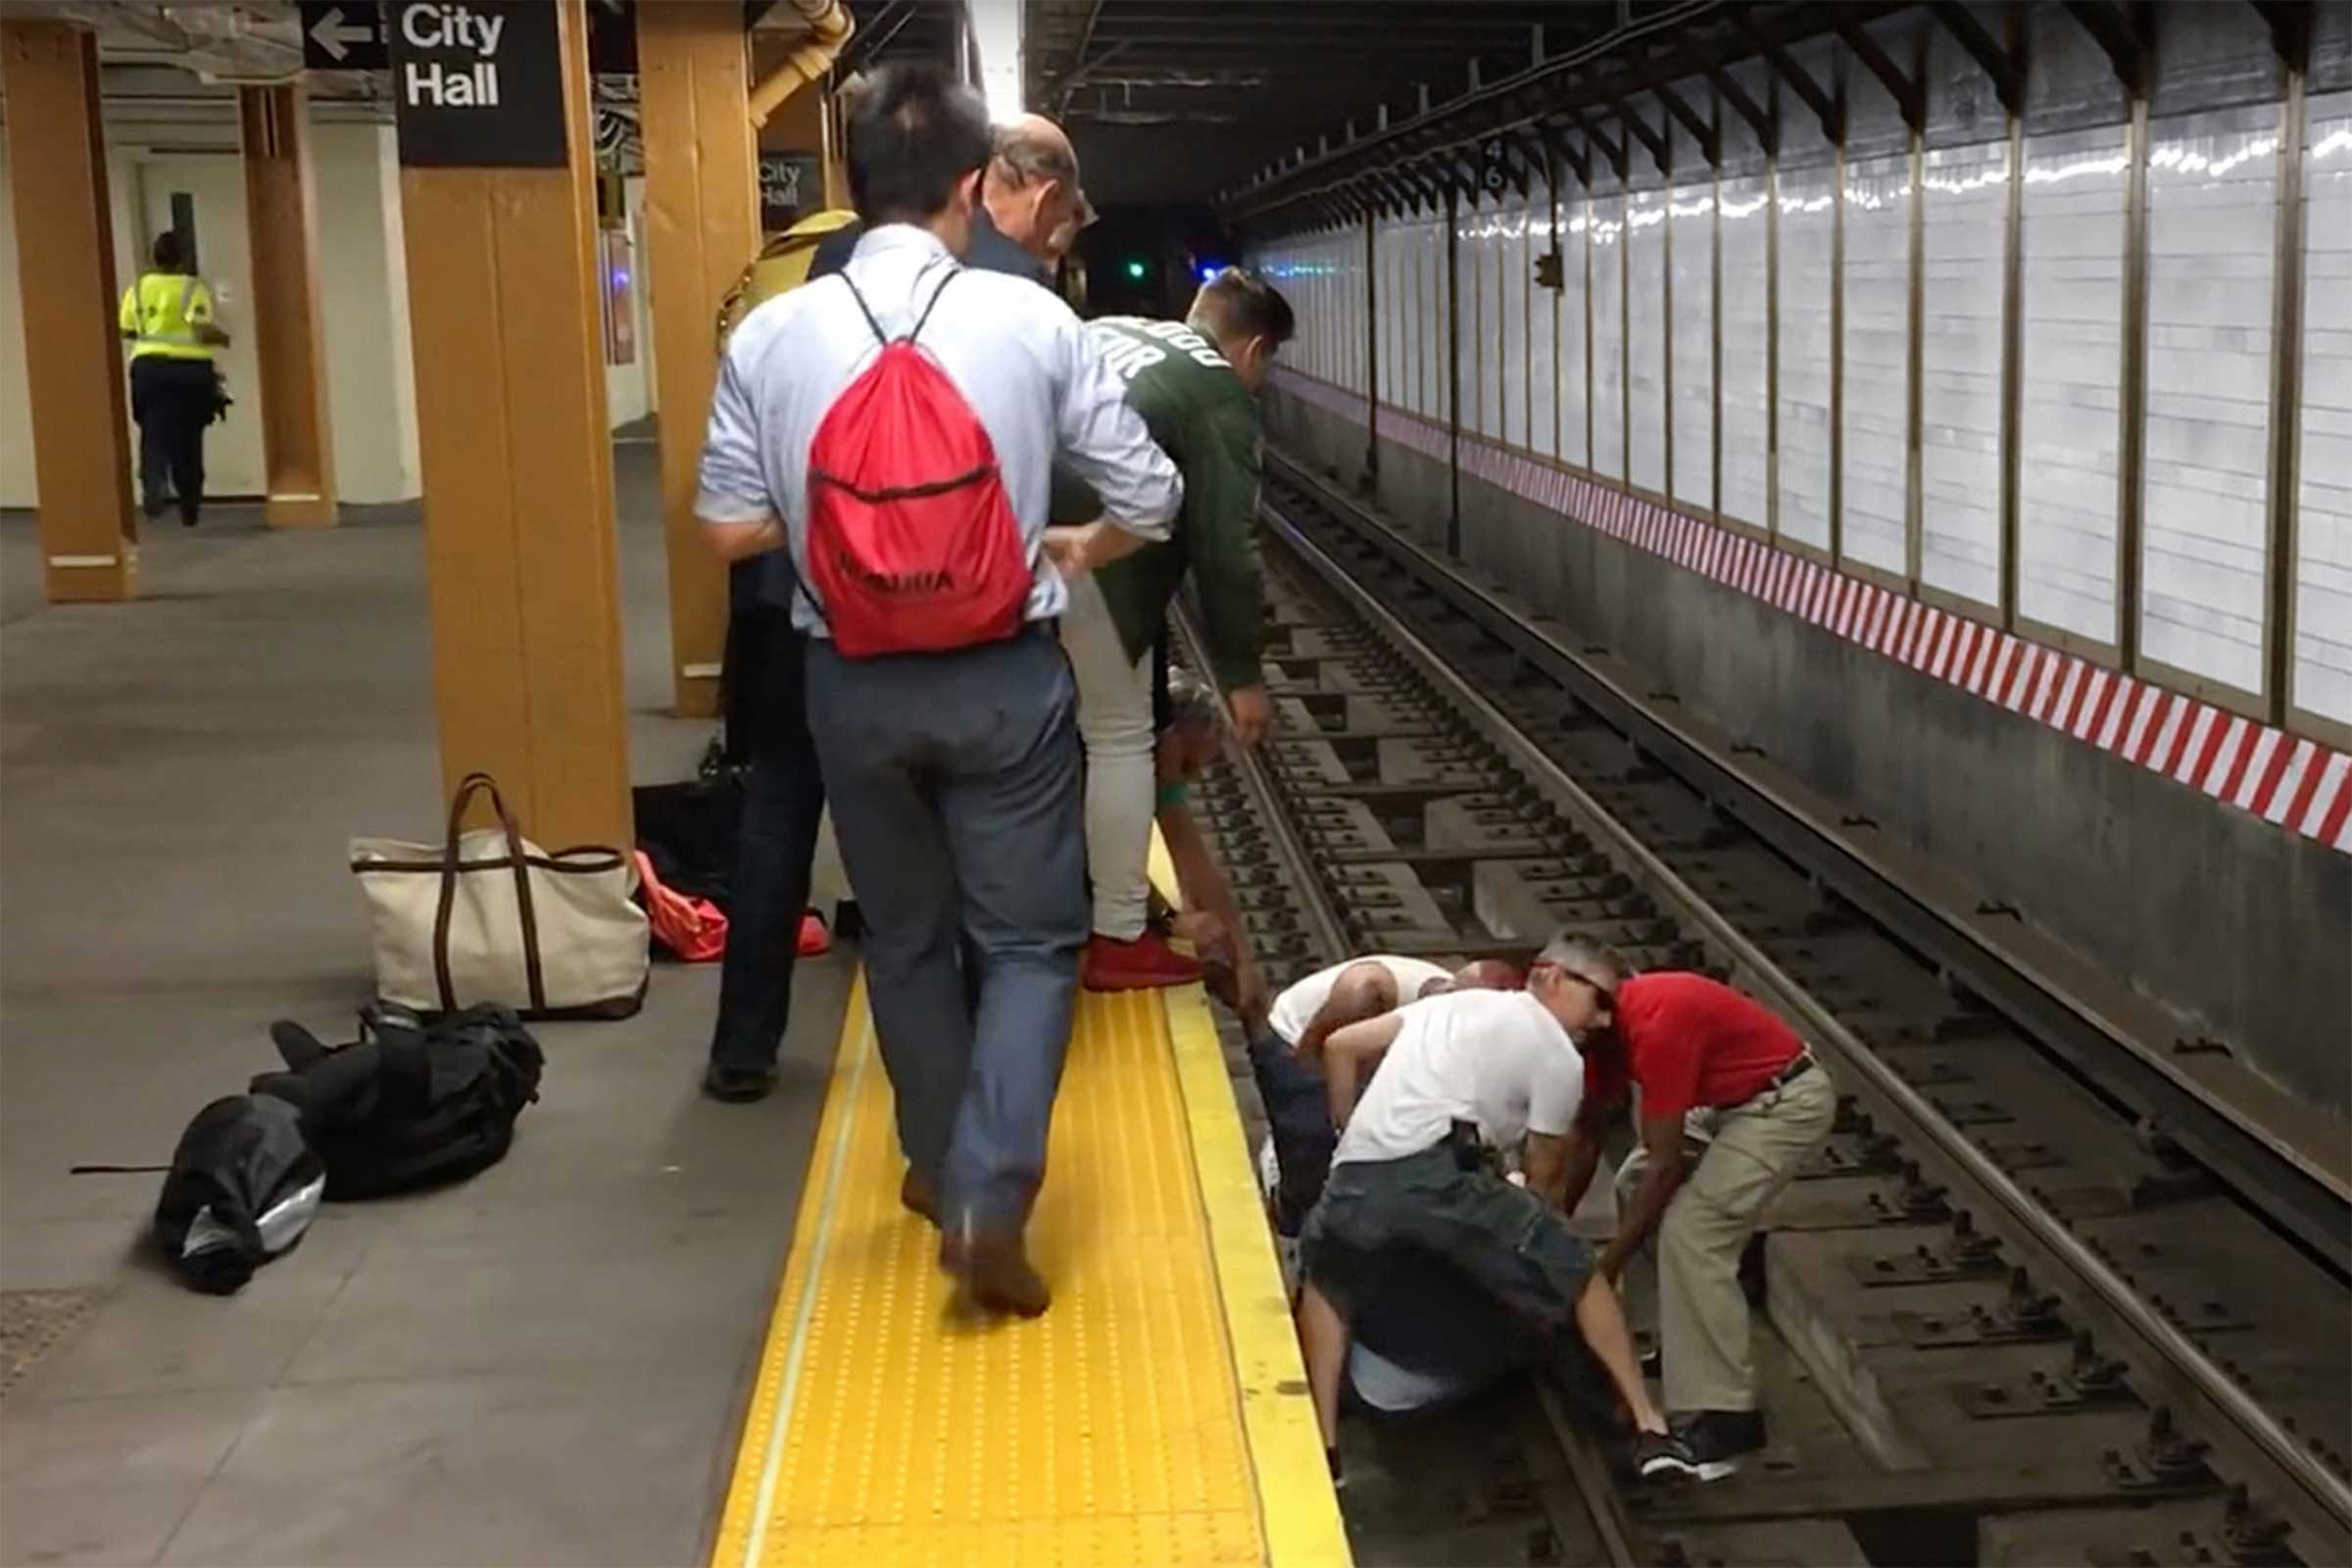 Three Strangers Jumped To Save This Man S Life Reader S